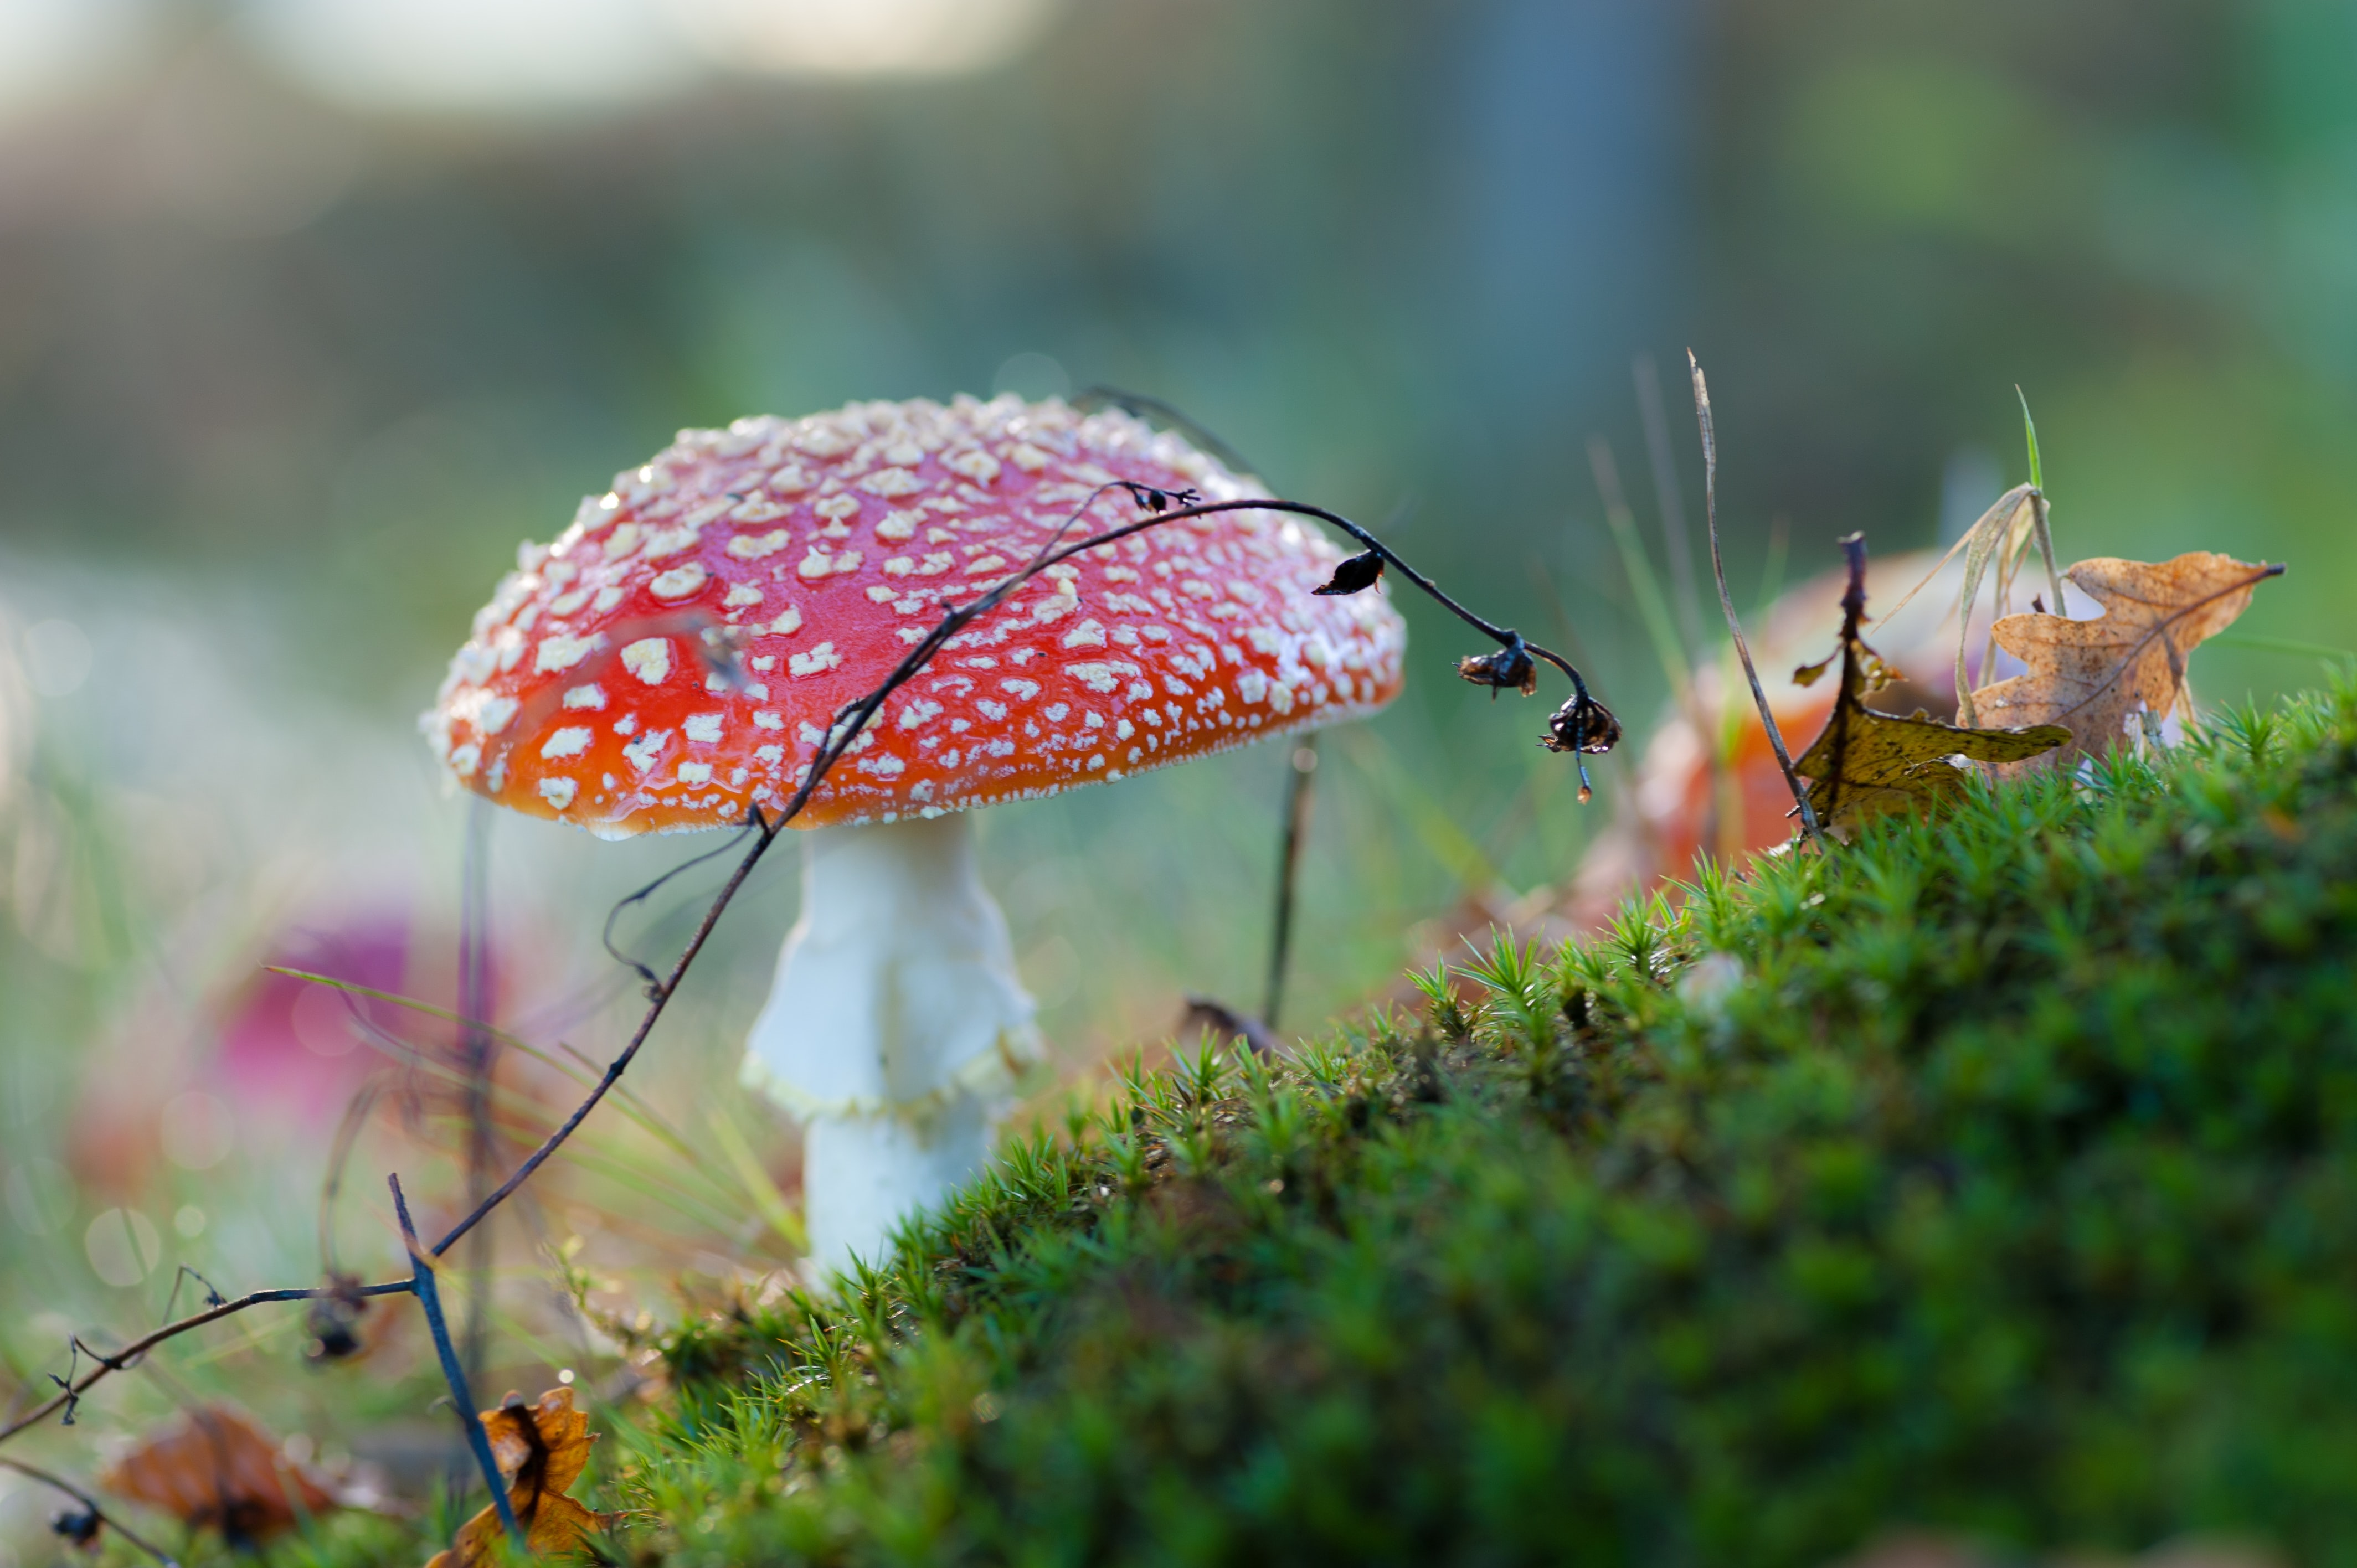 red and white mushroom on green grass ground